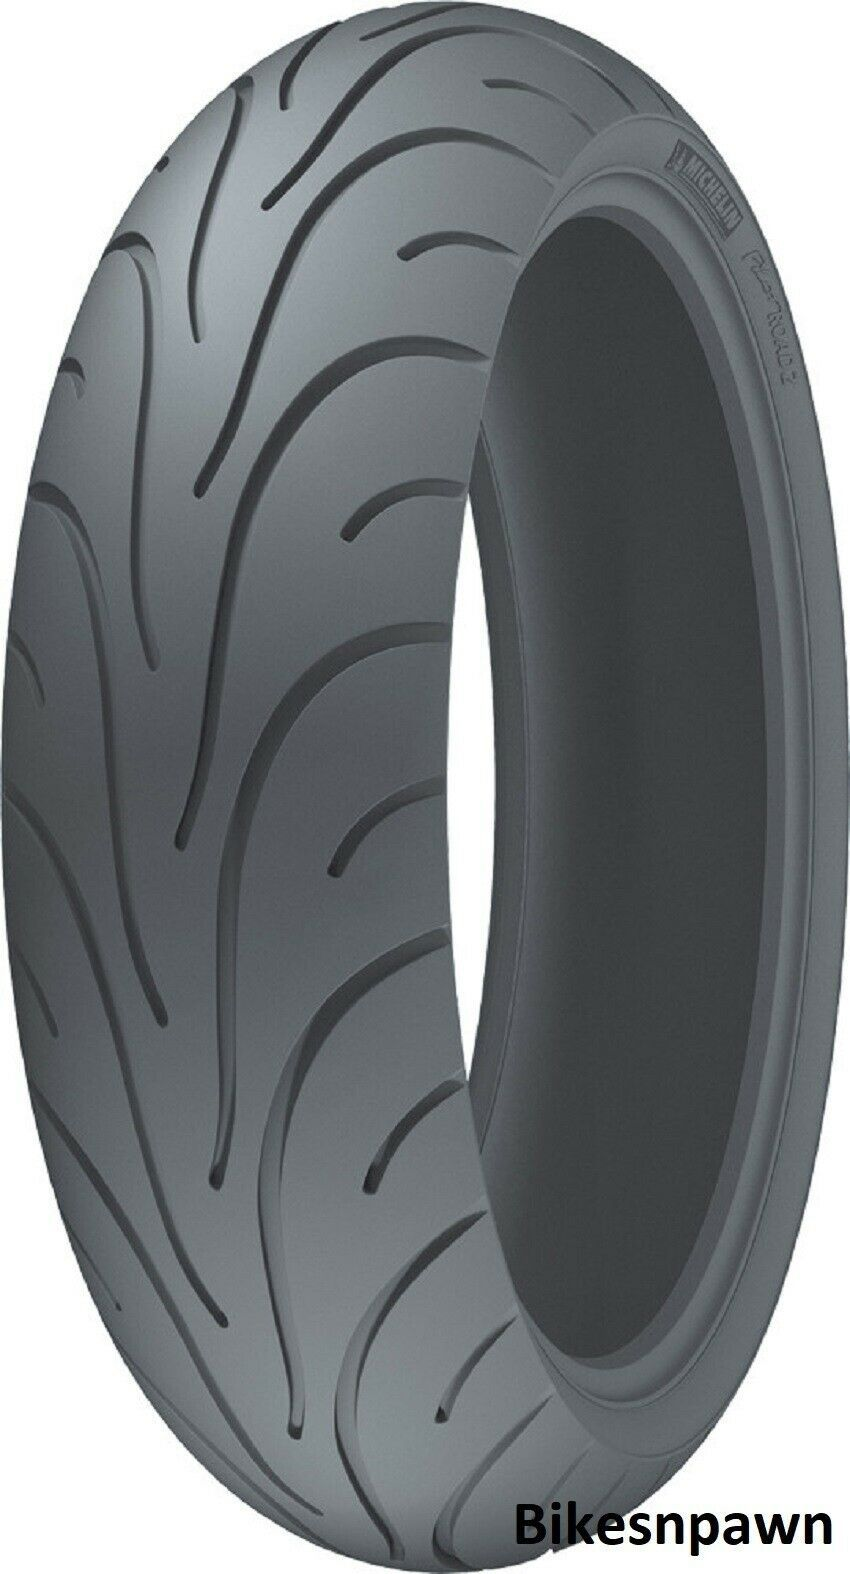 New Michelin Pilot Road 2 180/55ZR17 Rear TL Radial Motorcycle Tire 73W 95654